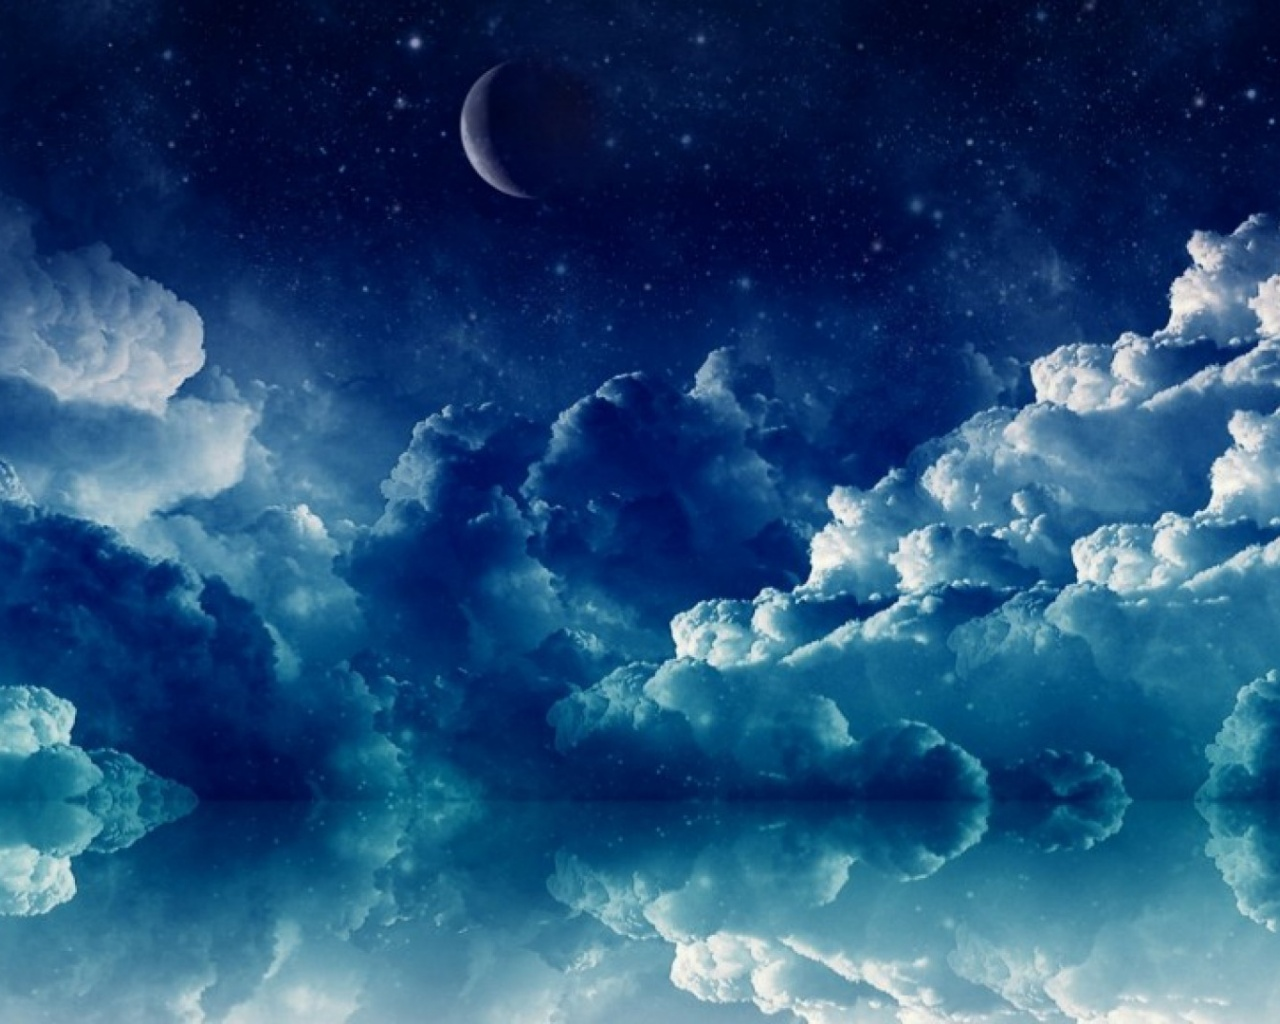 Jim Bannon Wallpapers Pretty Blue Wallpapers OriginalHD Pretty Blue Night